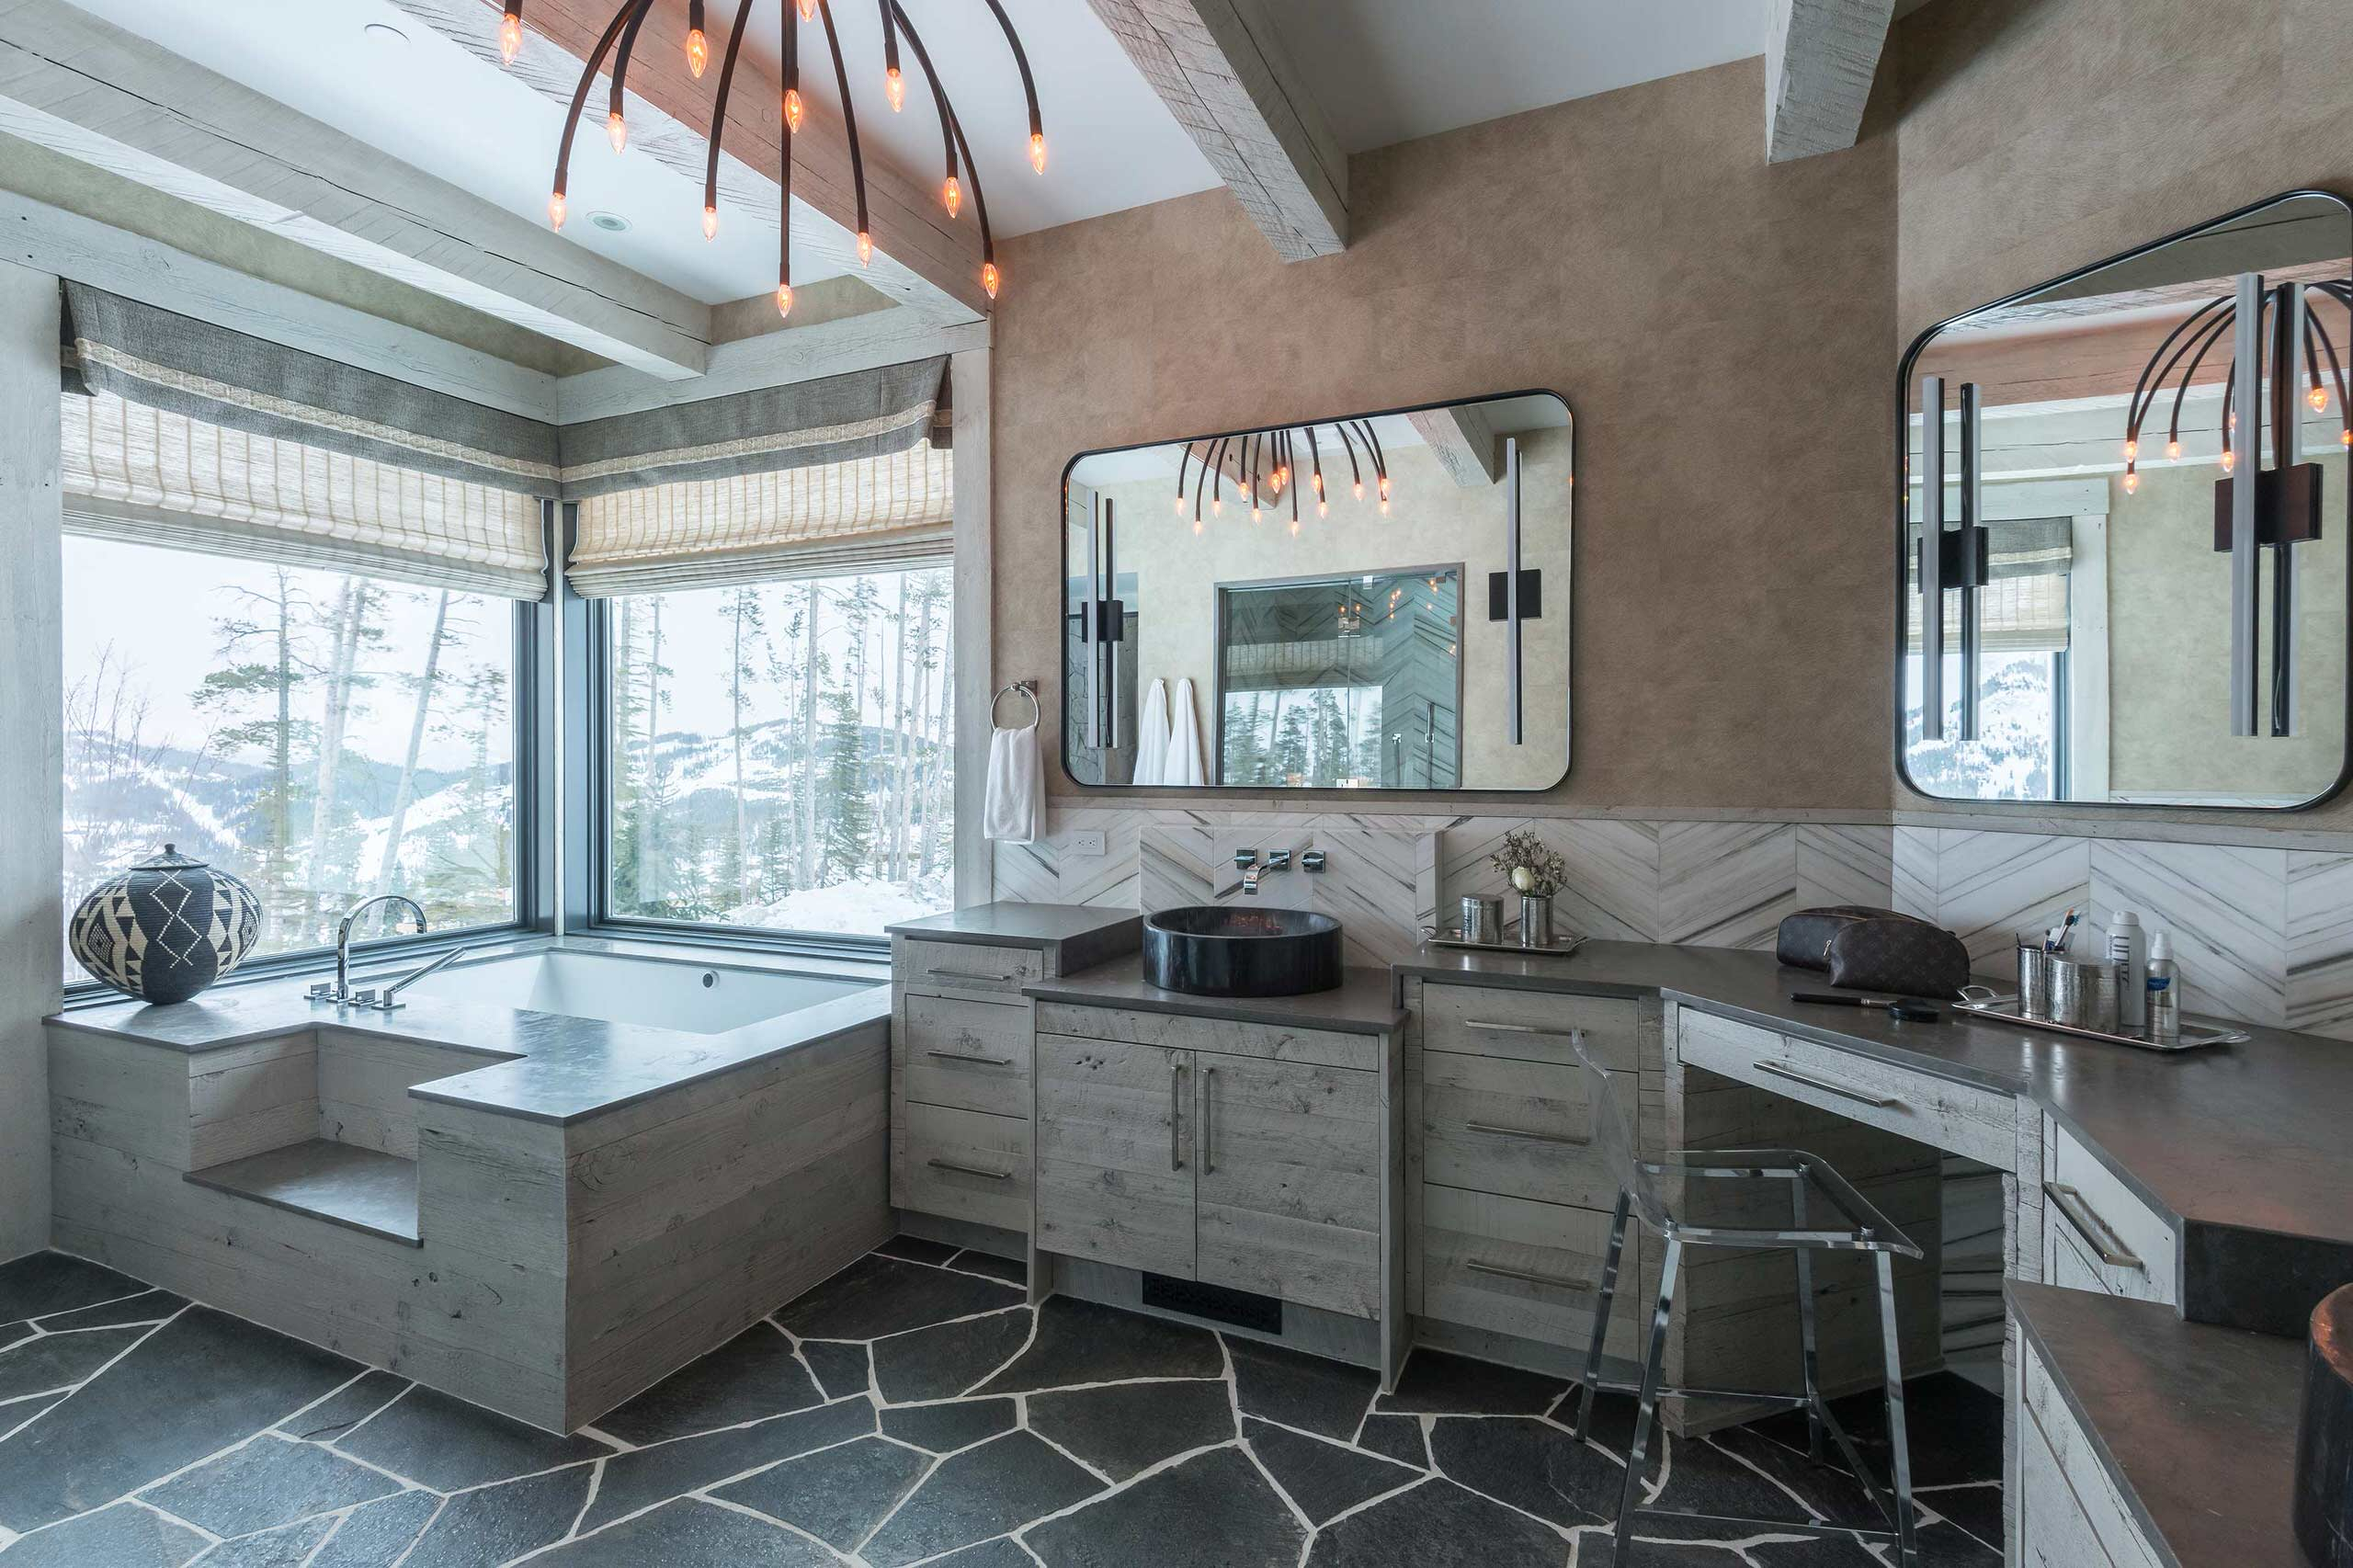 Bathroom Designs That'll Make It Your Favourite Place (7)